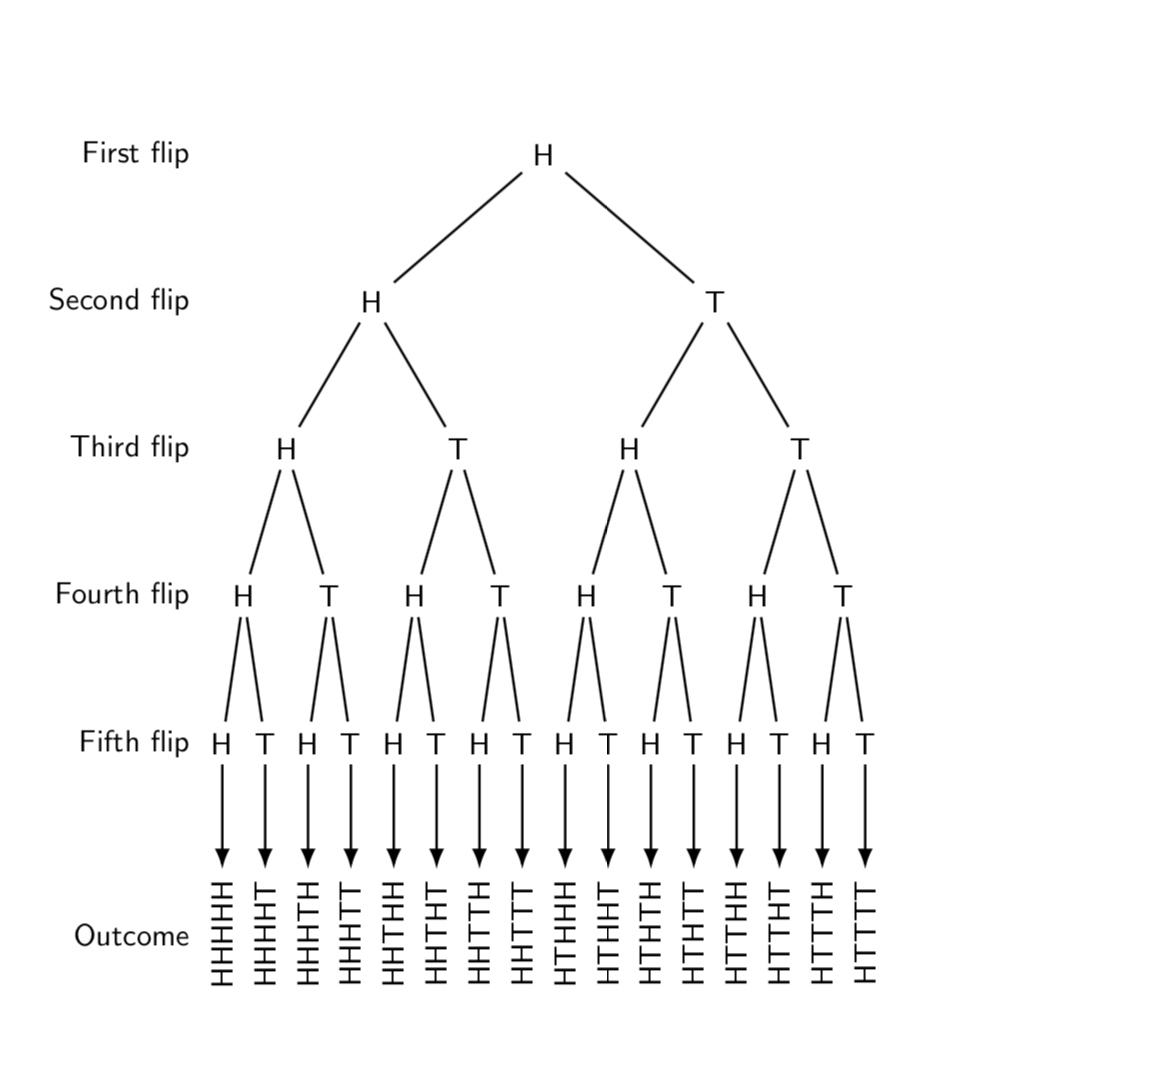 How To Draw This Tree Diagram